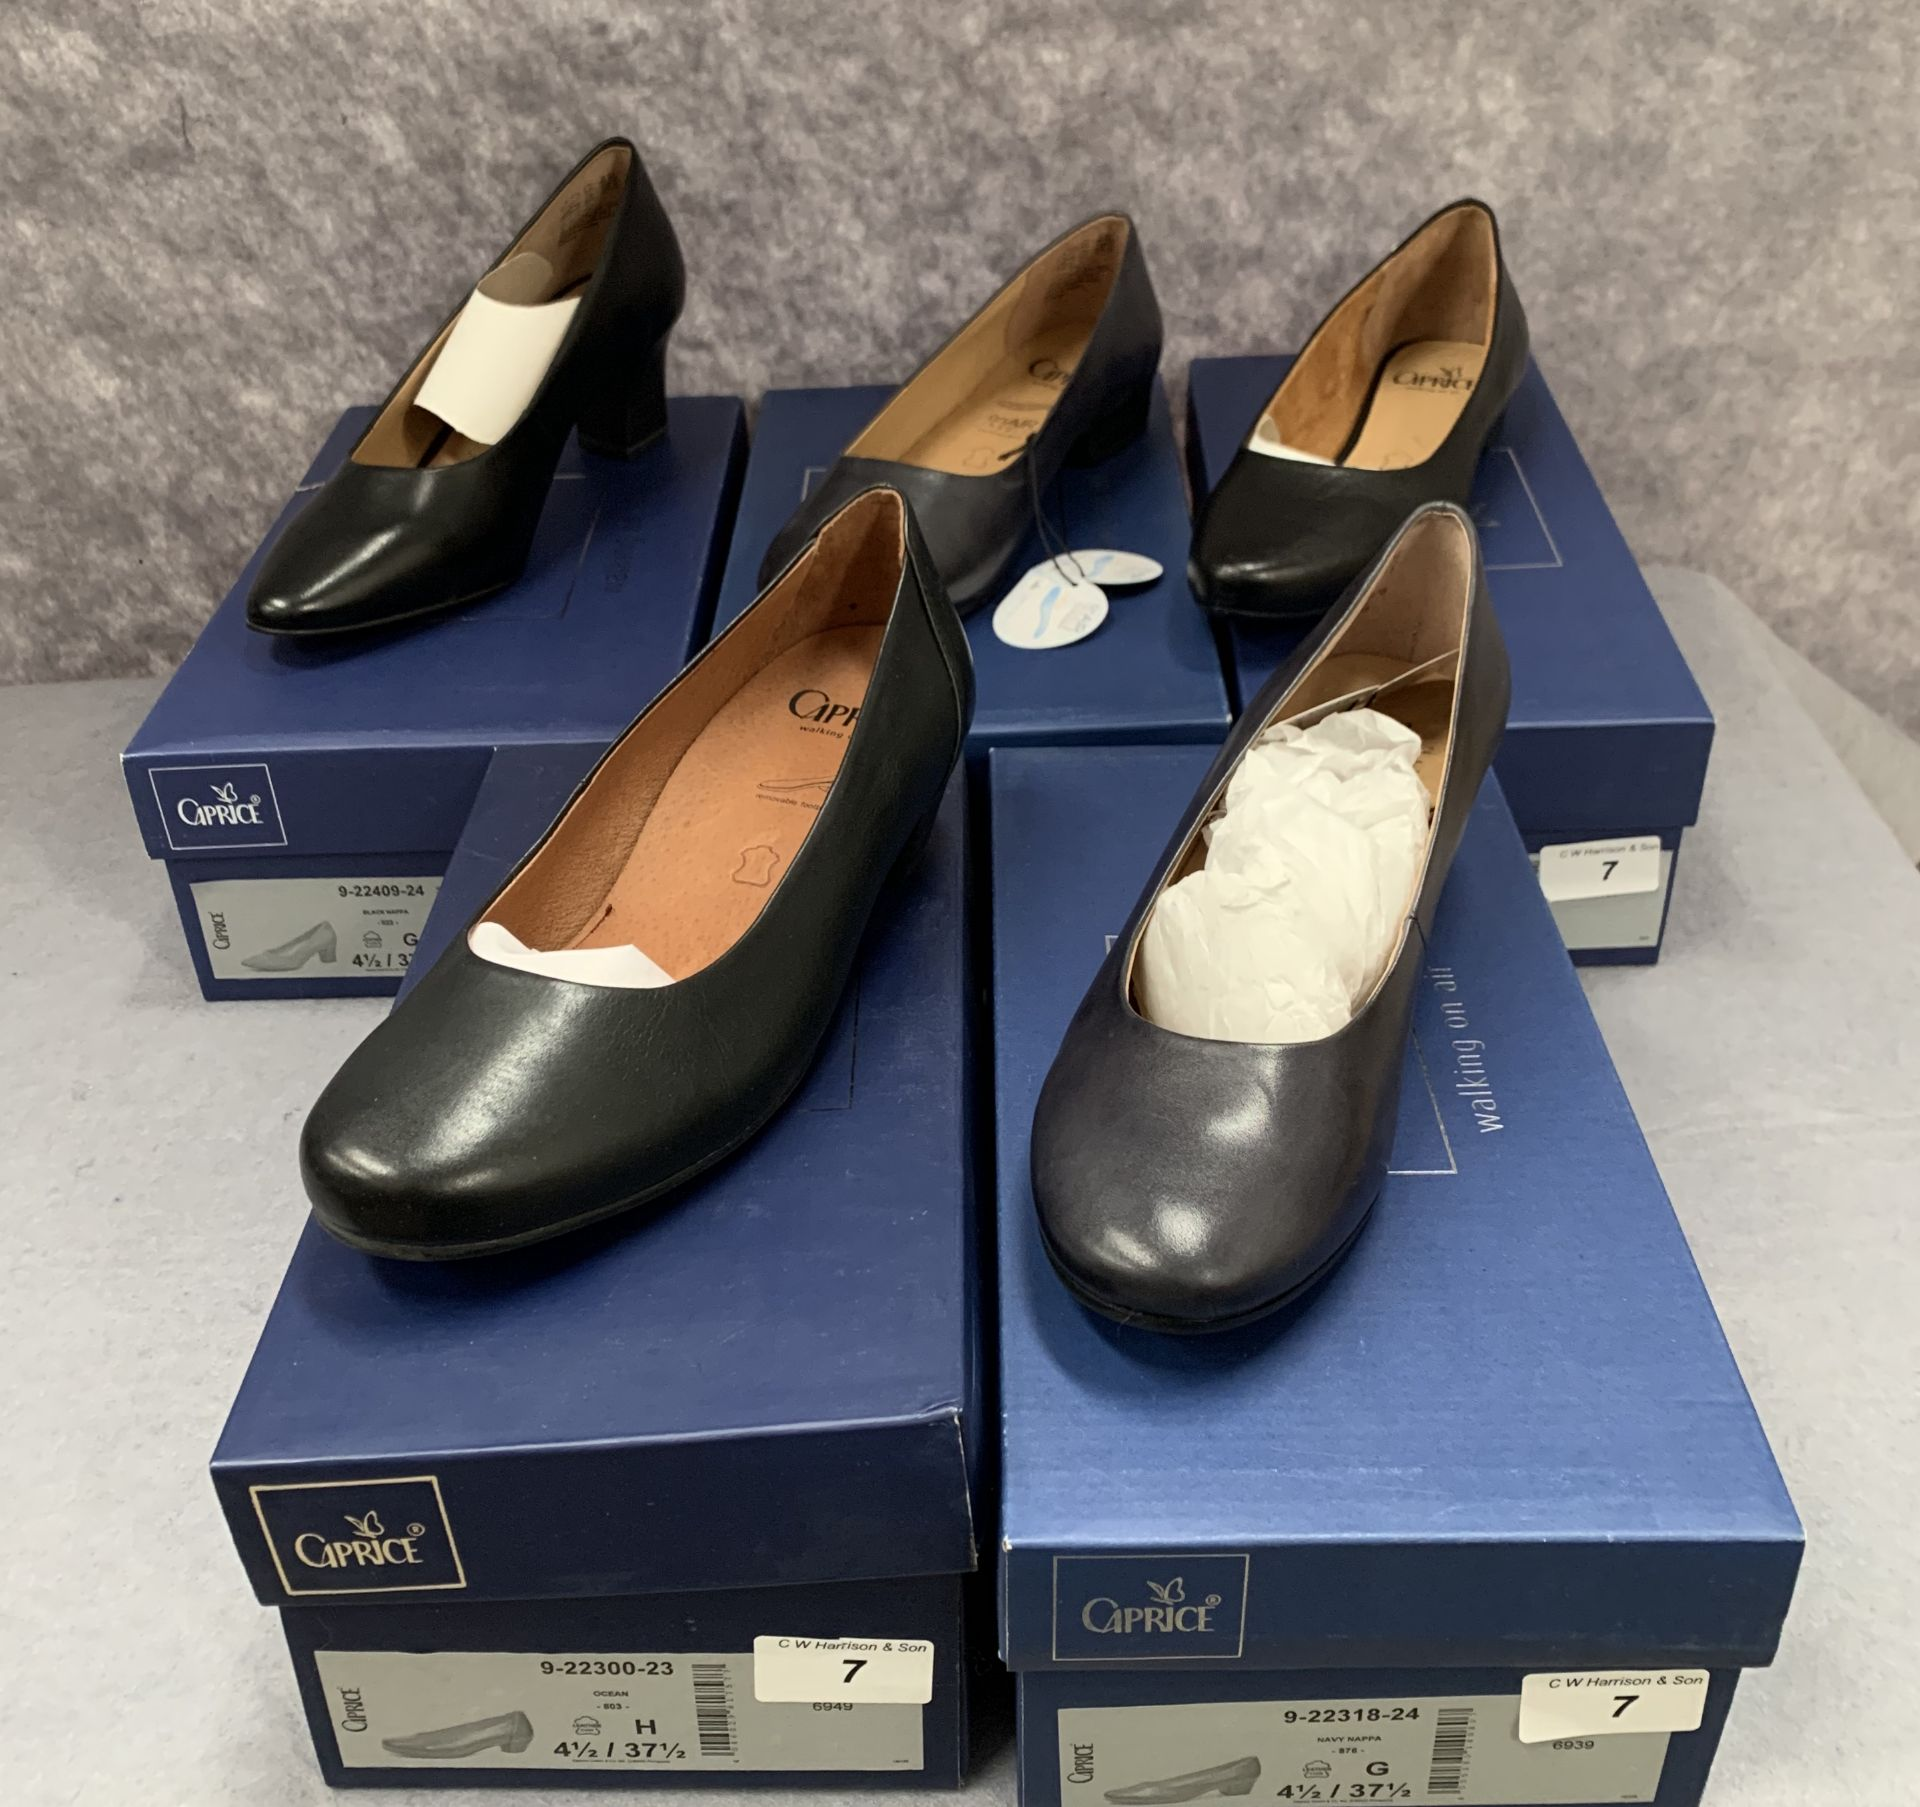 Lot 7 - Five pairs of Caprice ladies shoes in black, navy and ocean, various styles, size 4½,